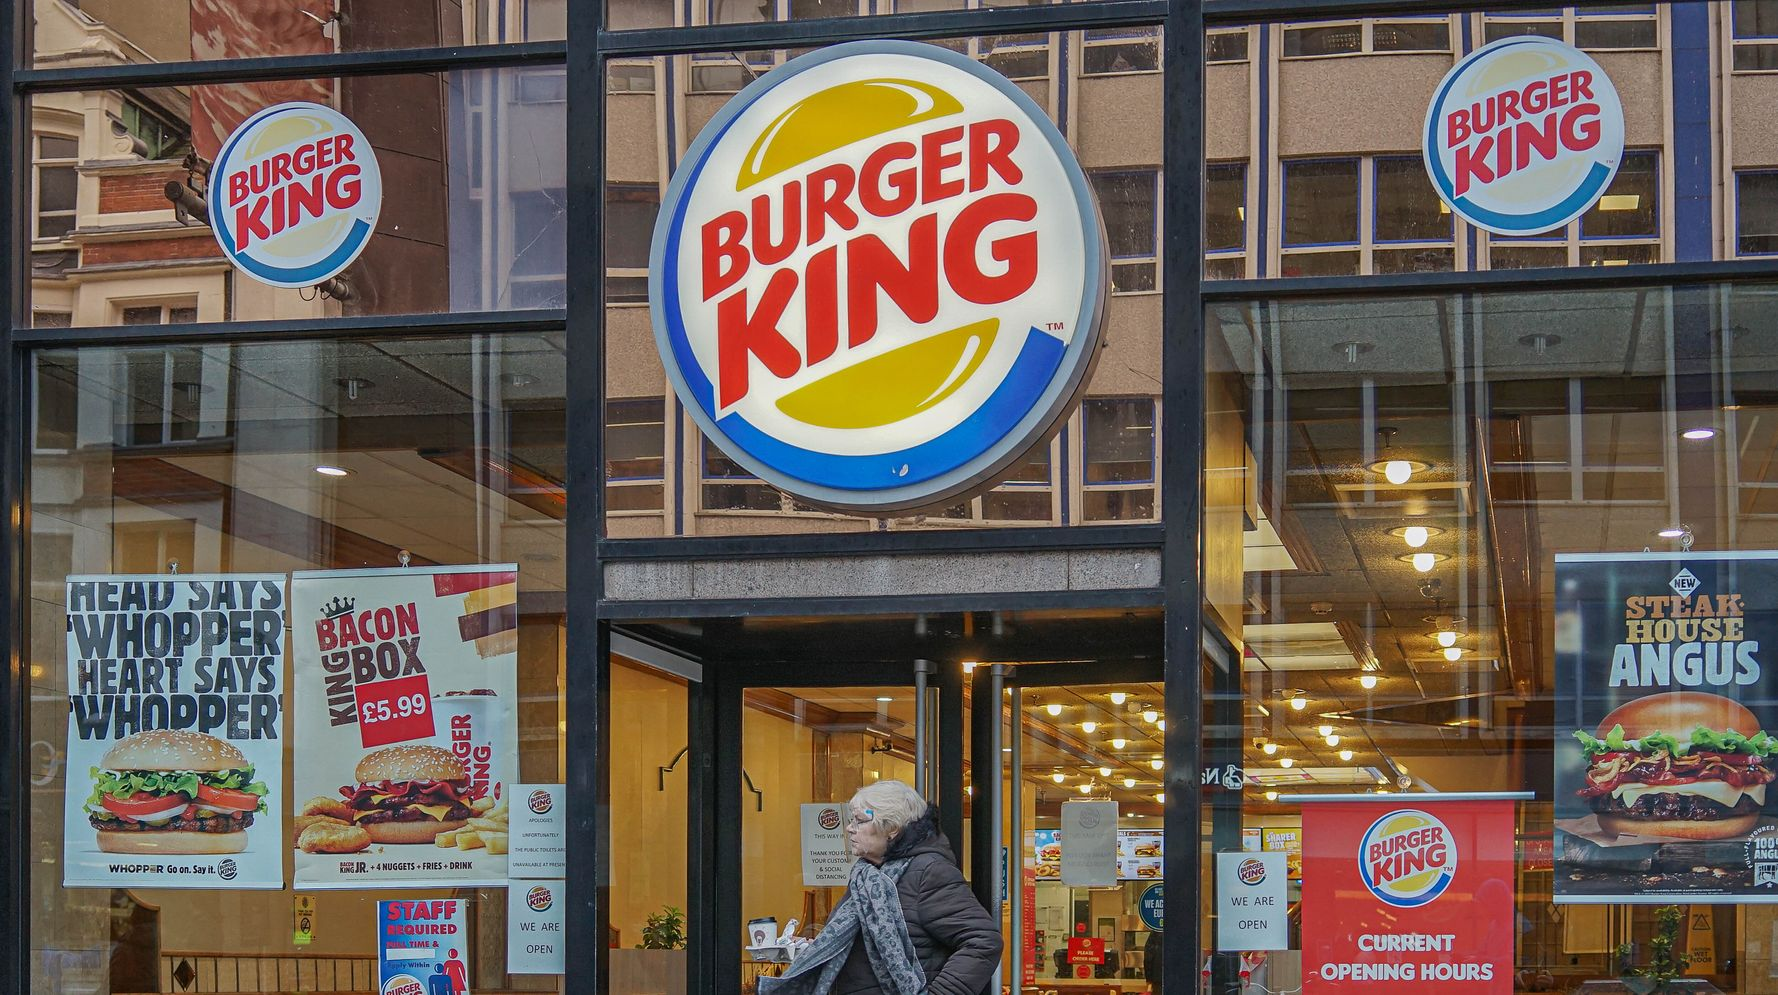 Burger King Apologizes After Uproar Over 'Women Belong In The Kitchen' Tweet